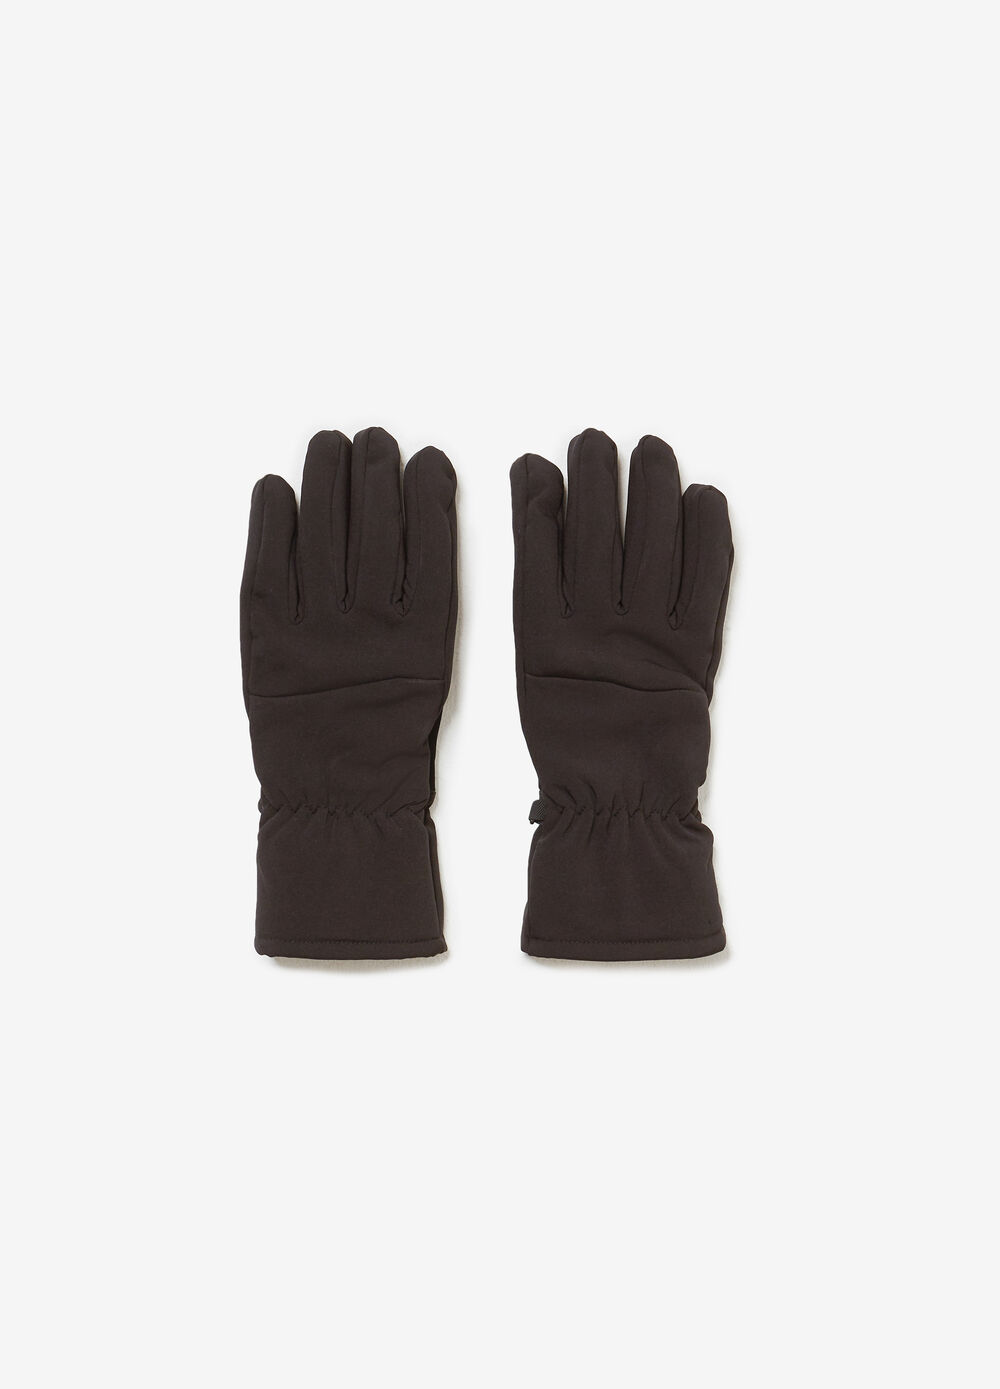 Lined touchscreen gloves with stitching